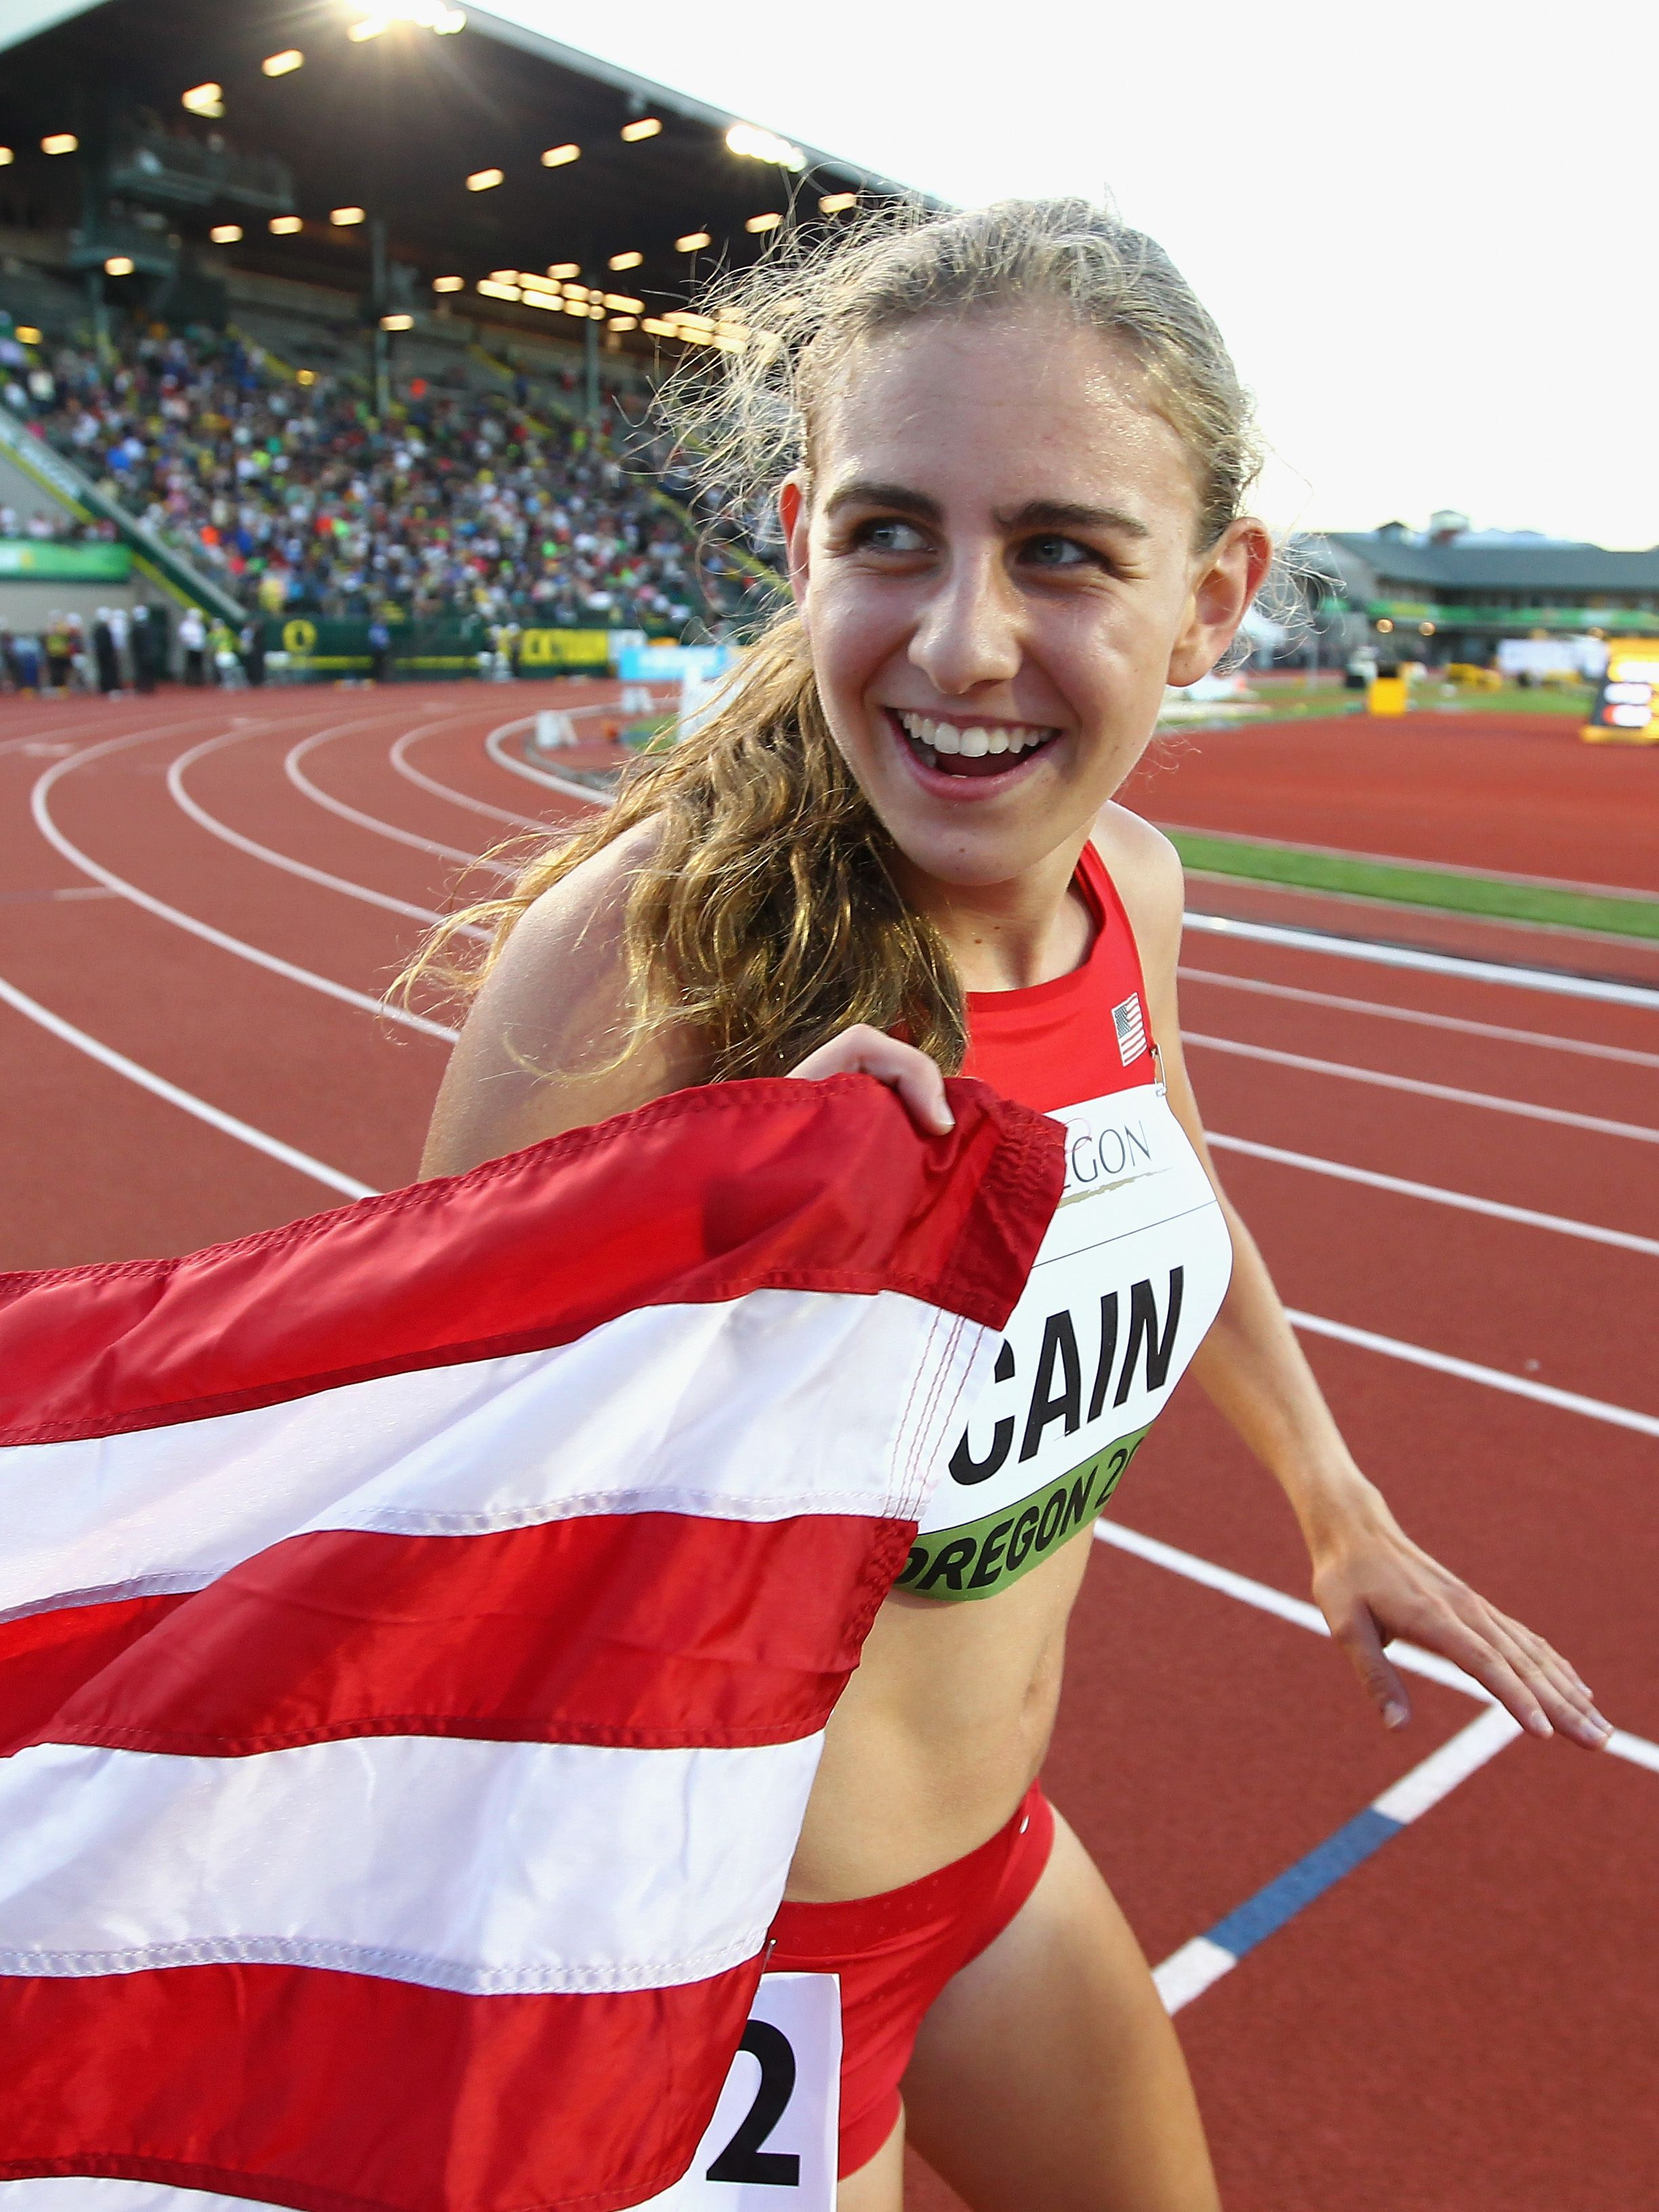 The Latest in Mary Cain's Allegations Against Nike and Salazar